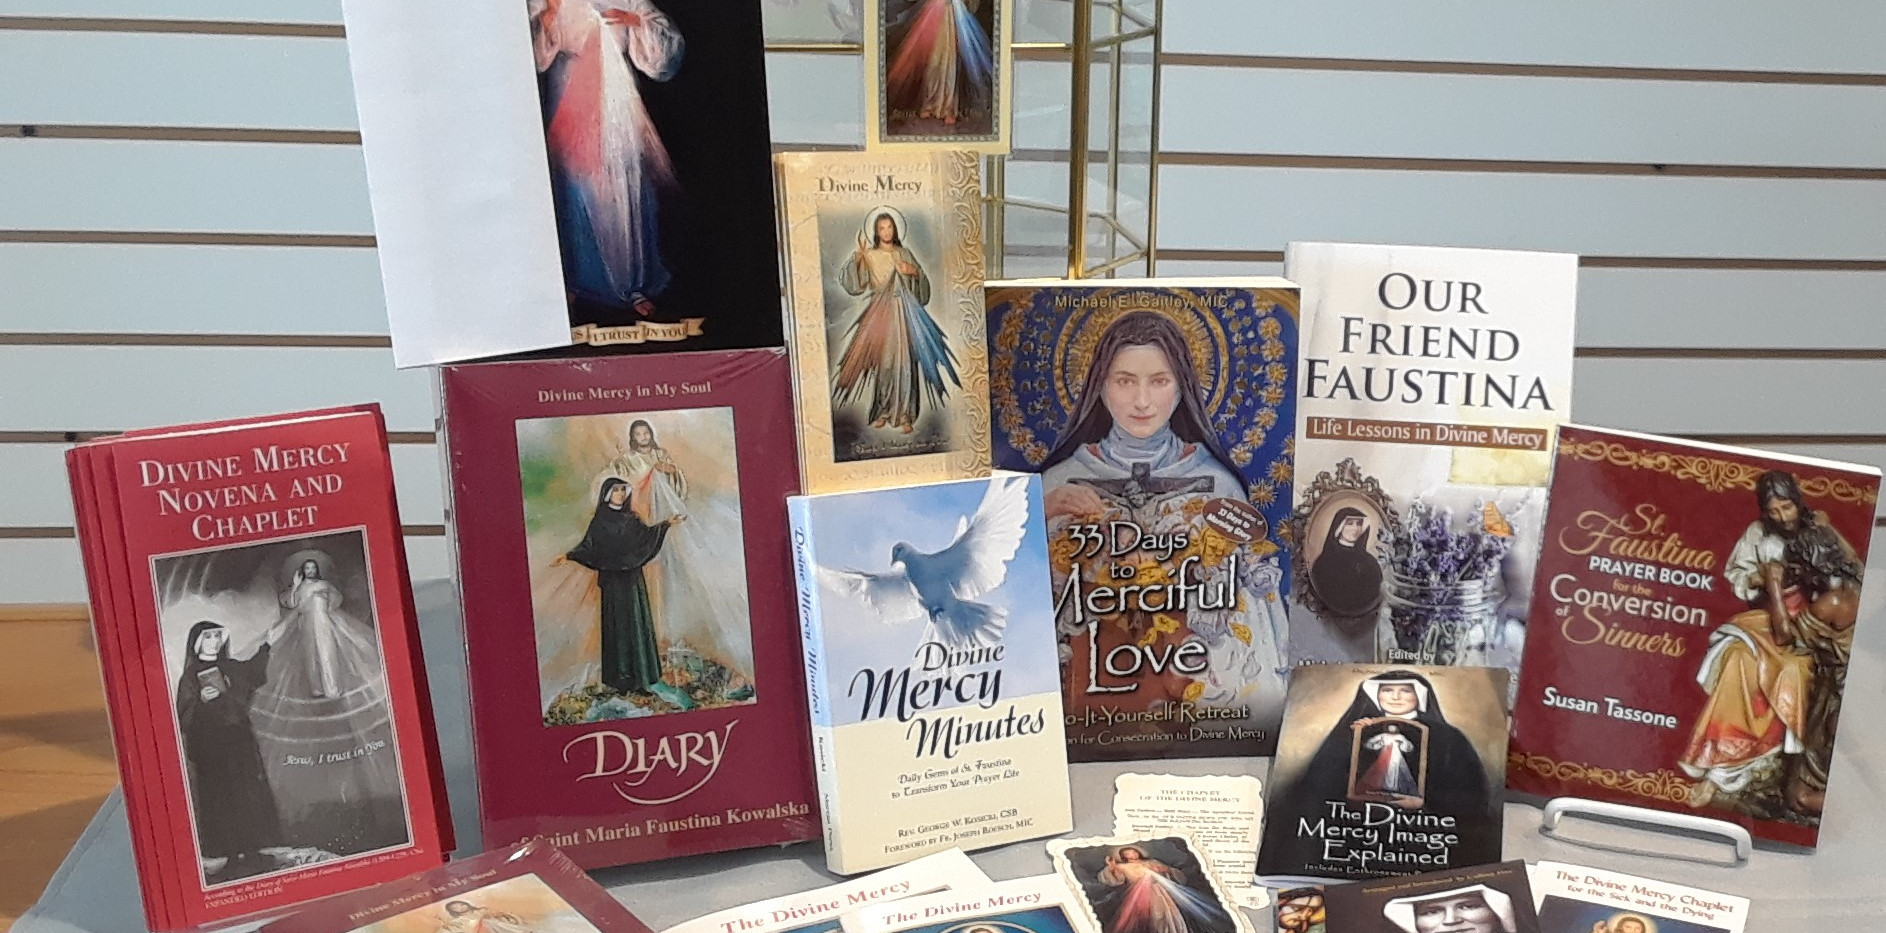 Divine Mercy books and pamphlets